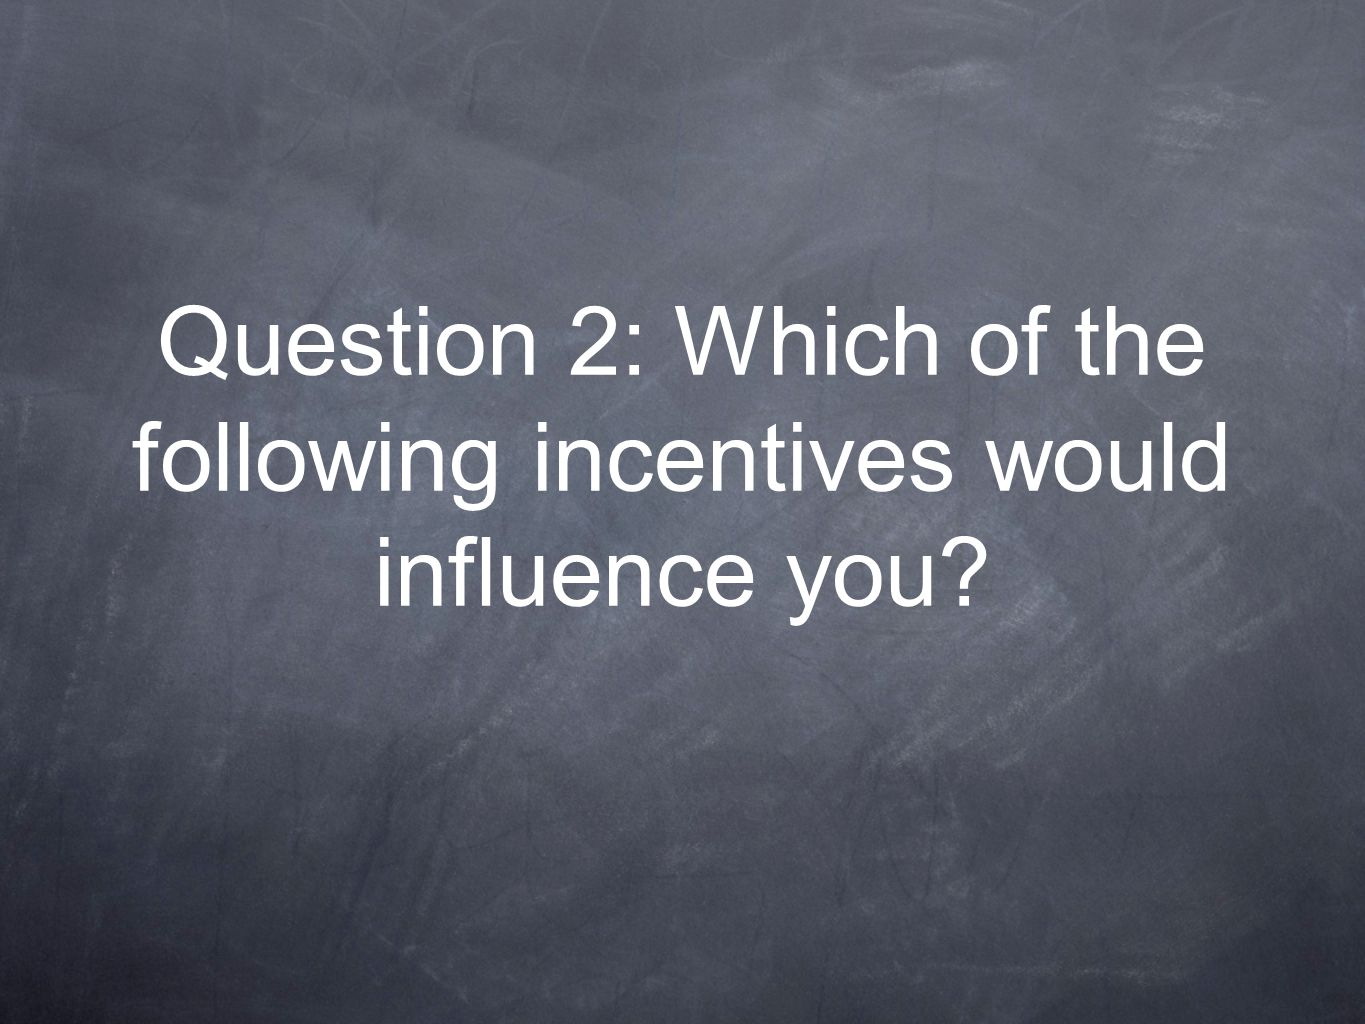 Question 2: Which of the following incentives would influence you?